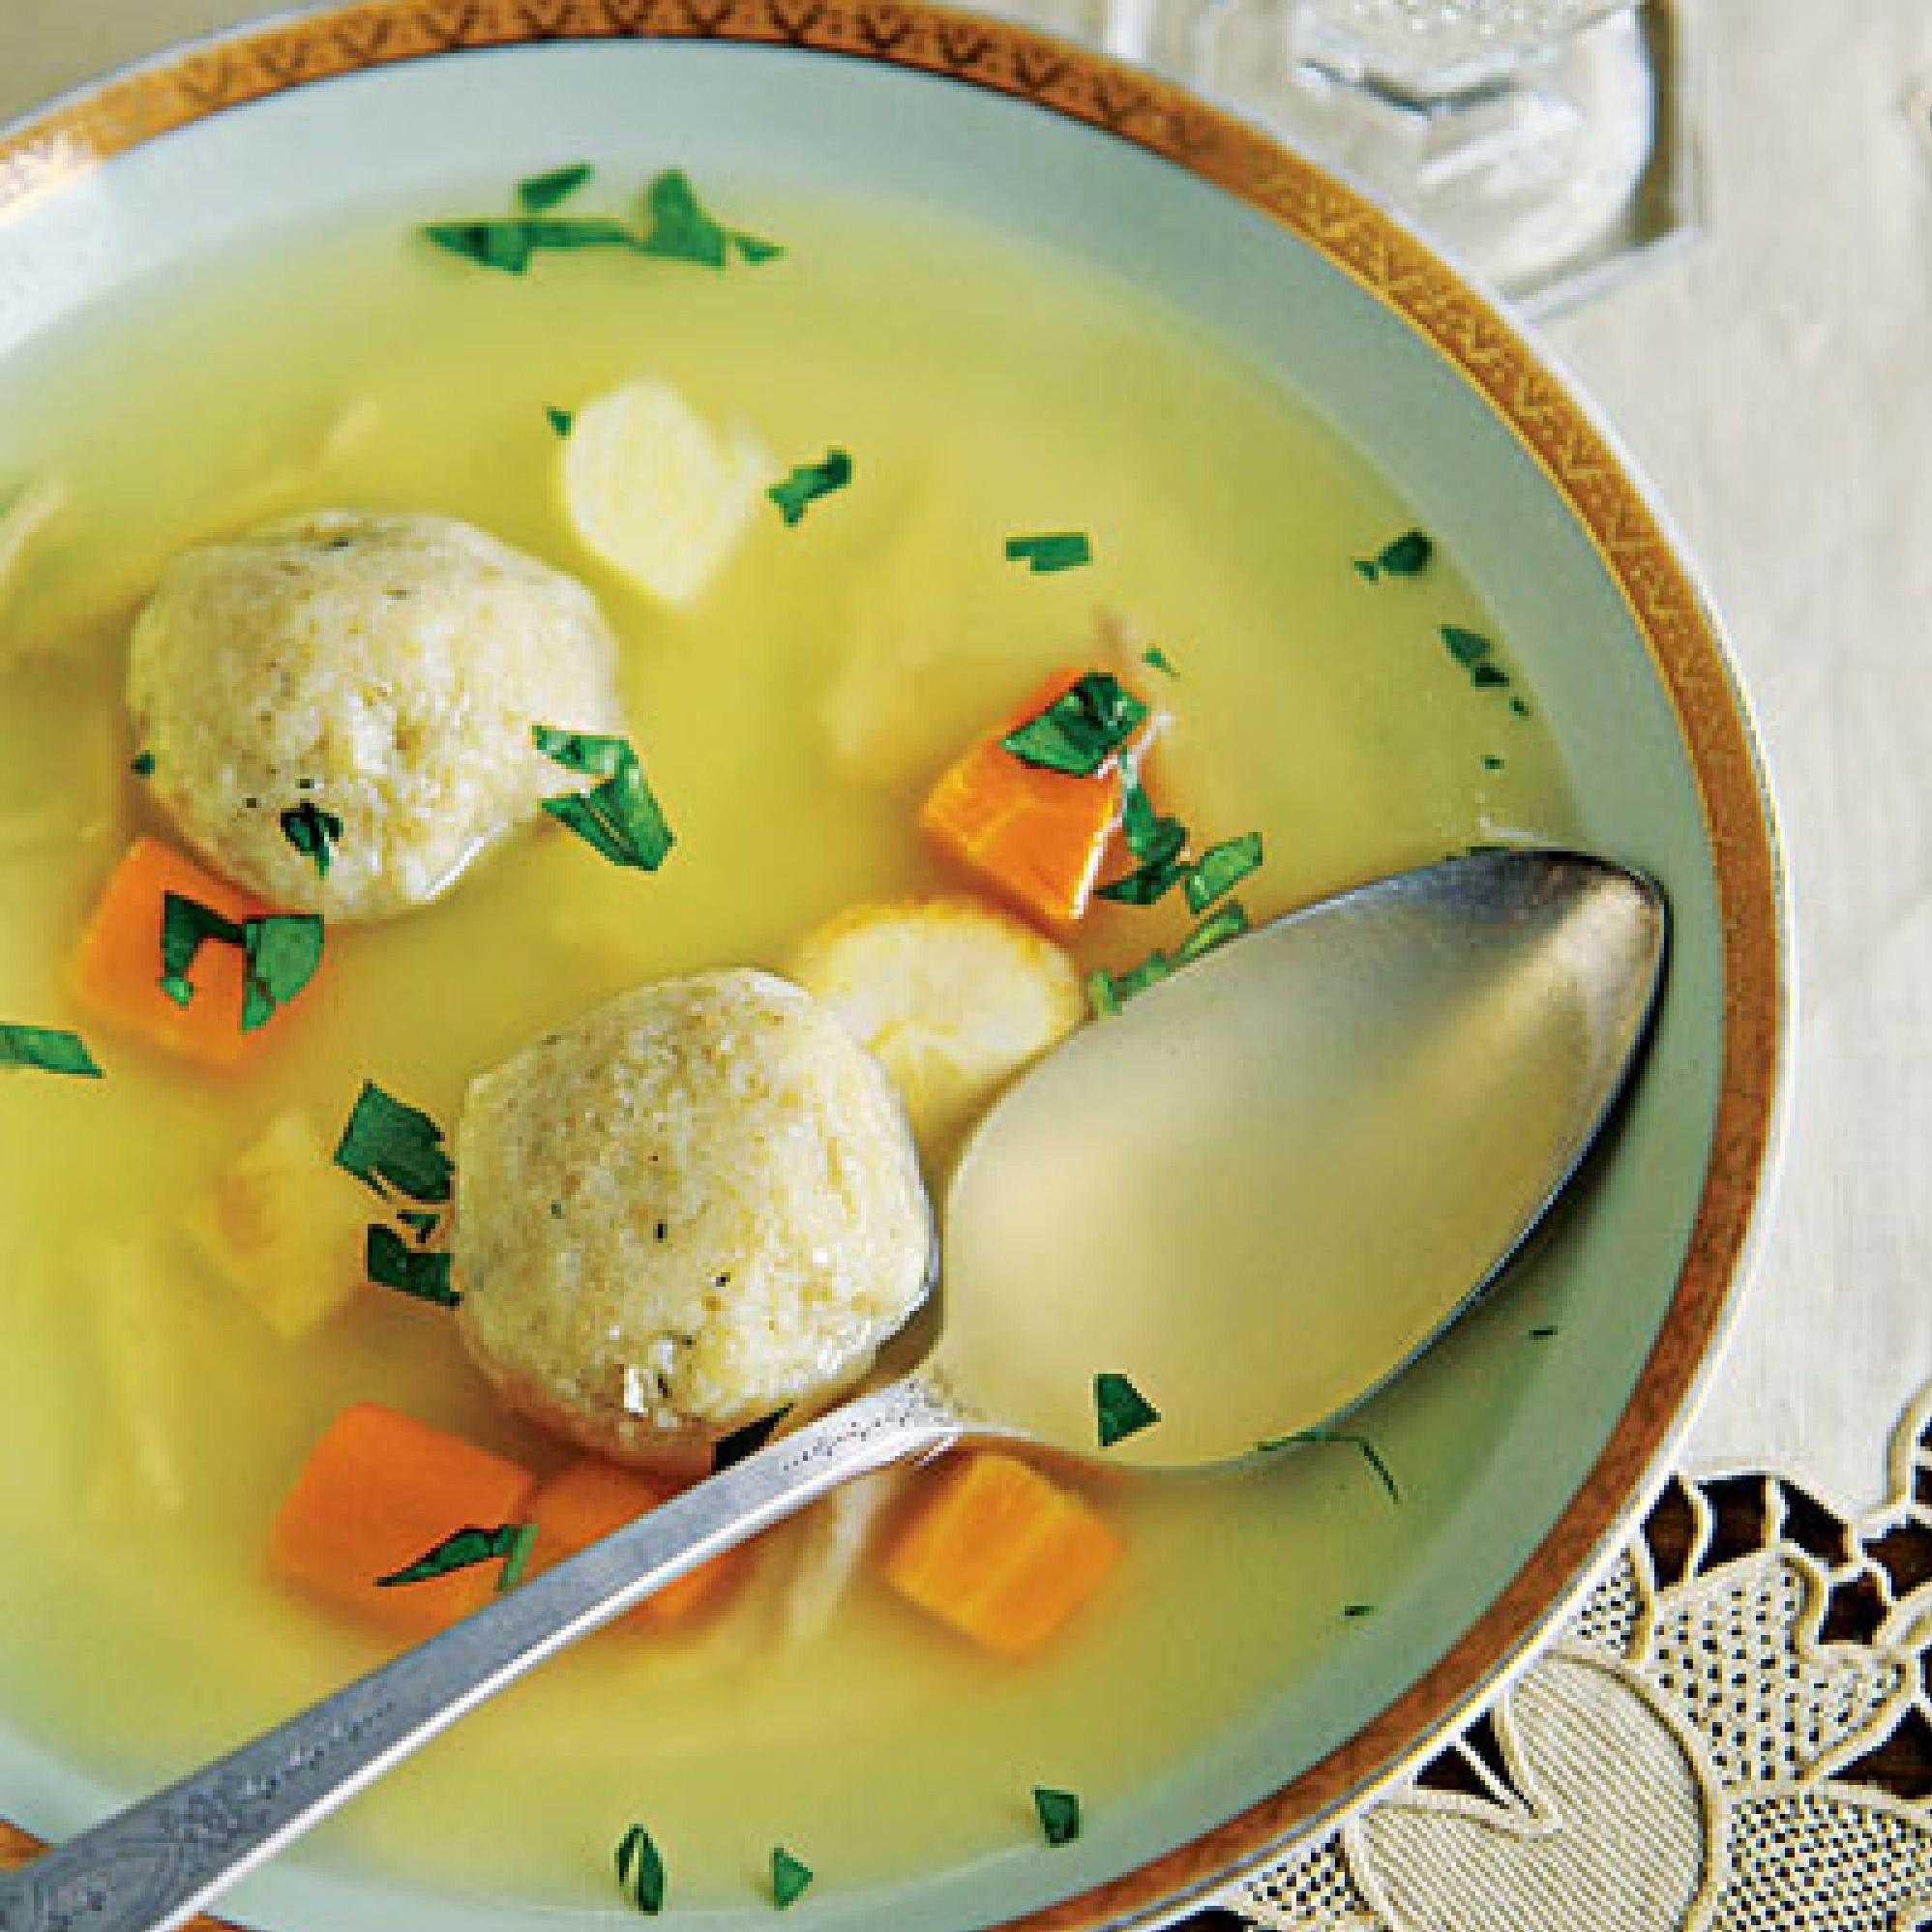 Matzo ball soup. Make these Jewish recipes at your next dinner party! These are perfect for large gatherings to celebrate all the Jewish holidays.